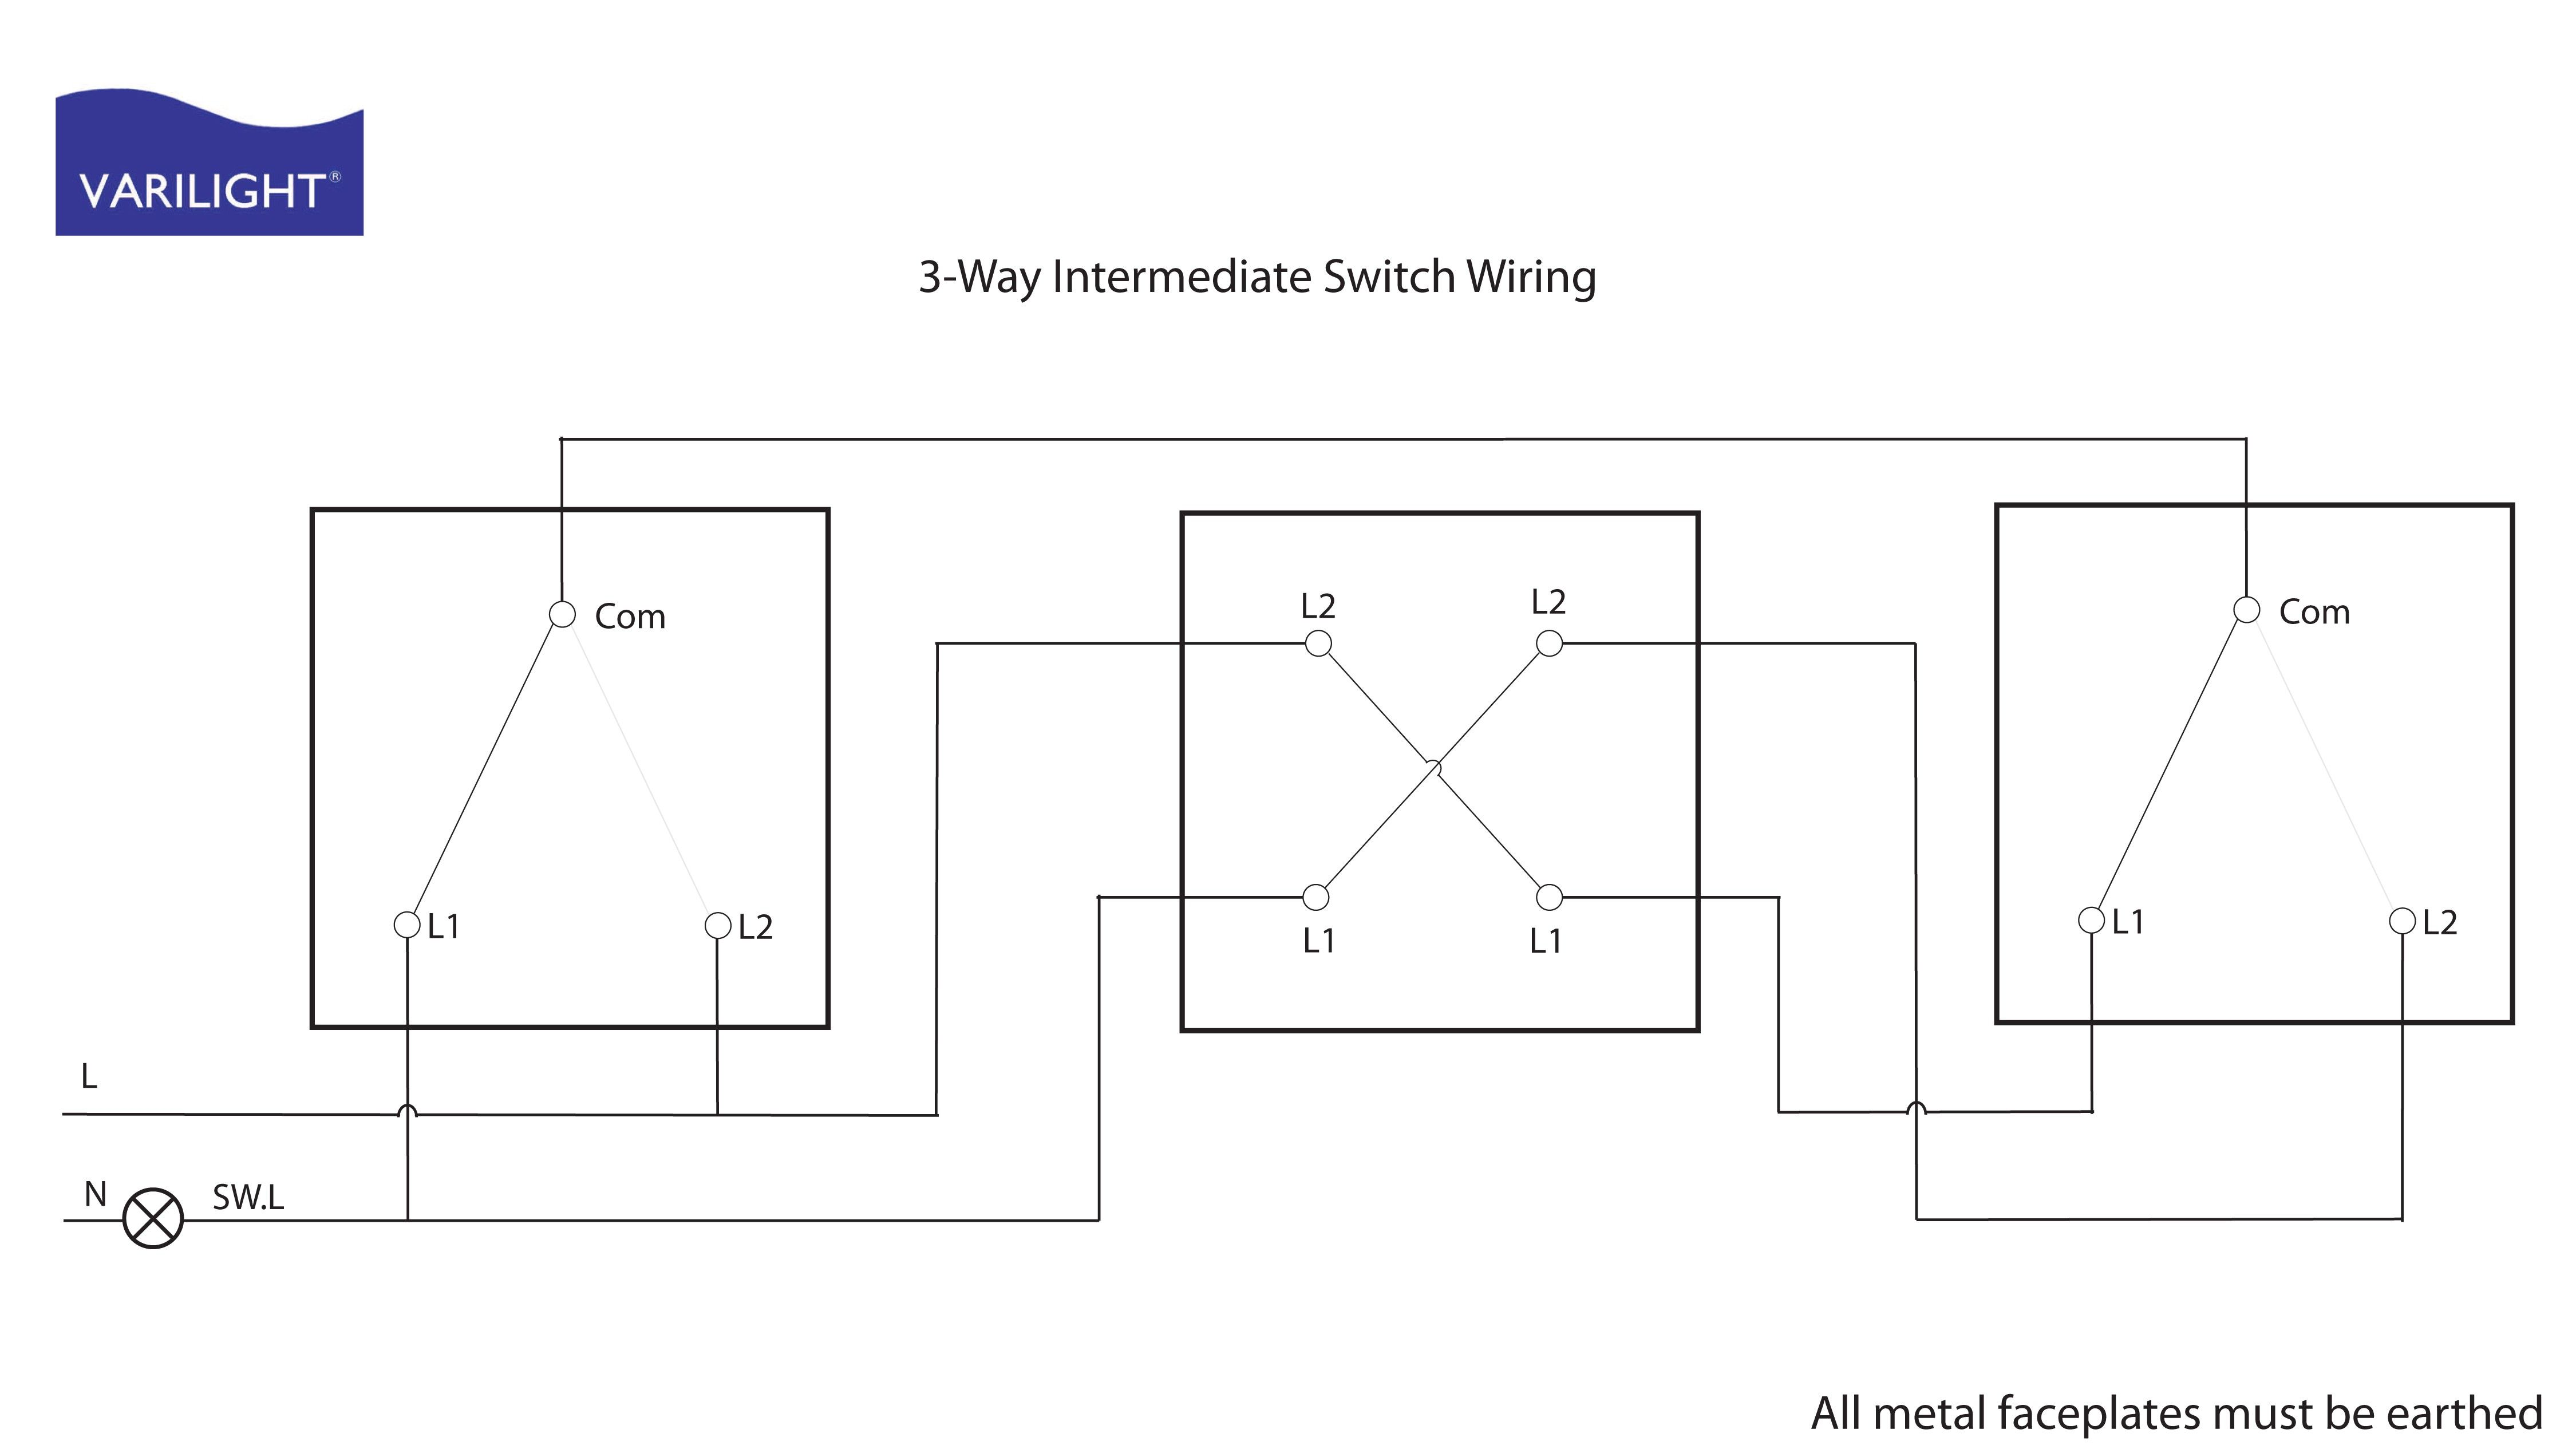 House Wiring Diagram Supply To Next In Uk House Electrical Wiring Diagrams For Light And Back Box Uk House Wiring Home Electrical Wiring Light Switch Wiring